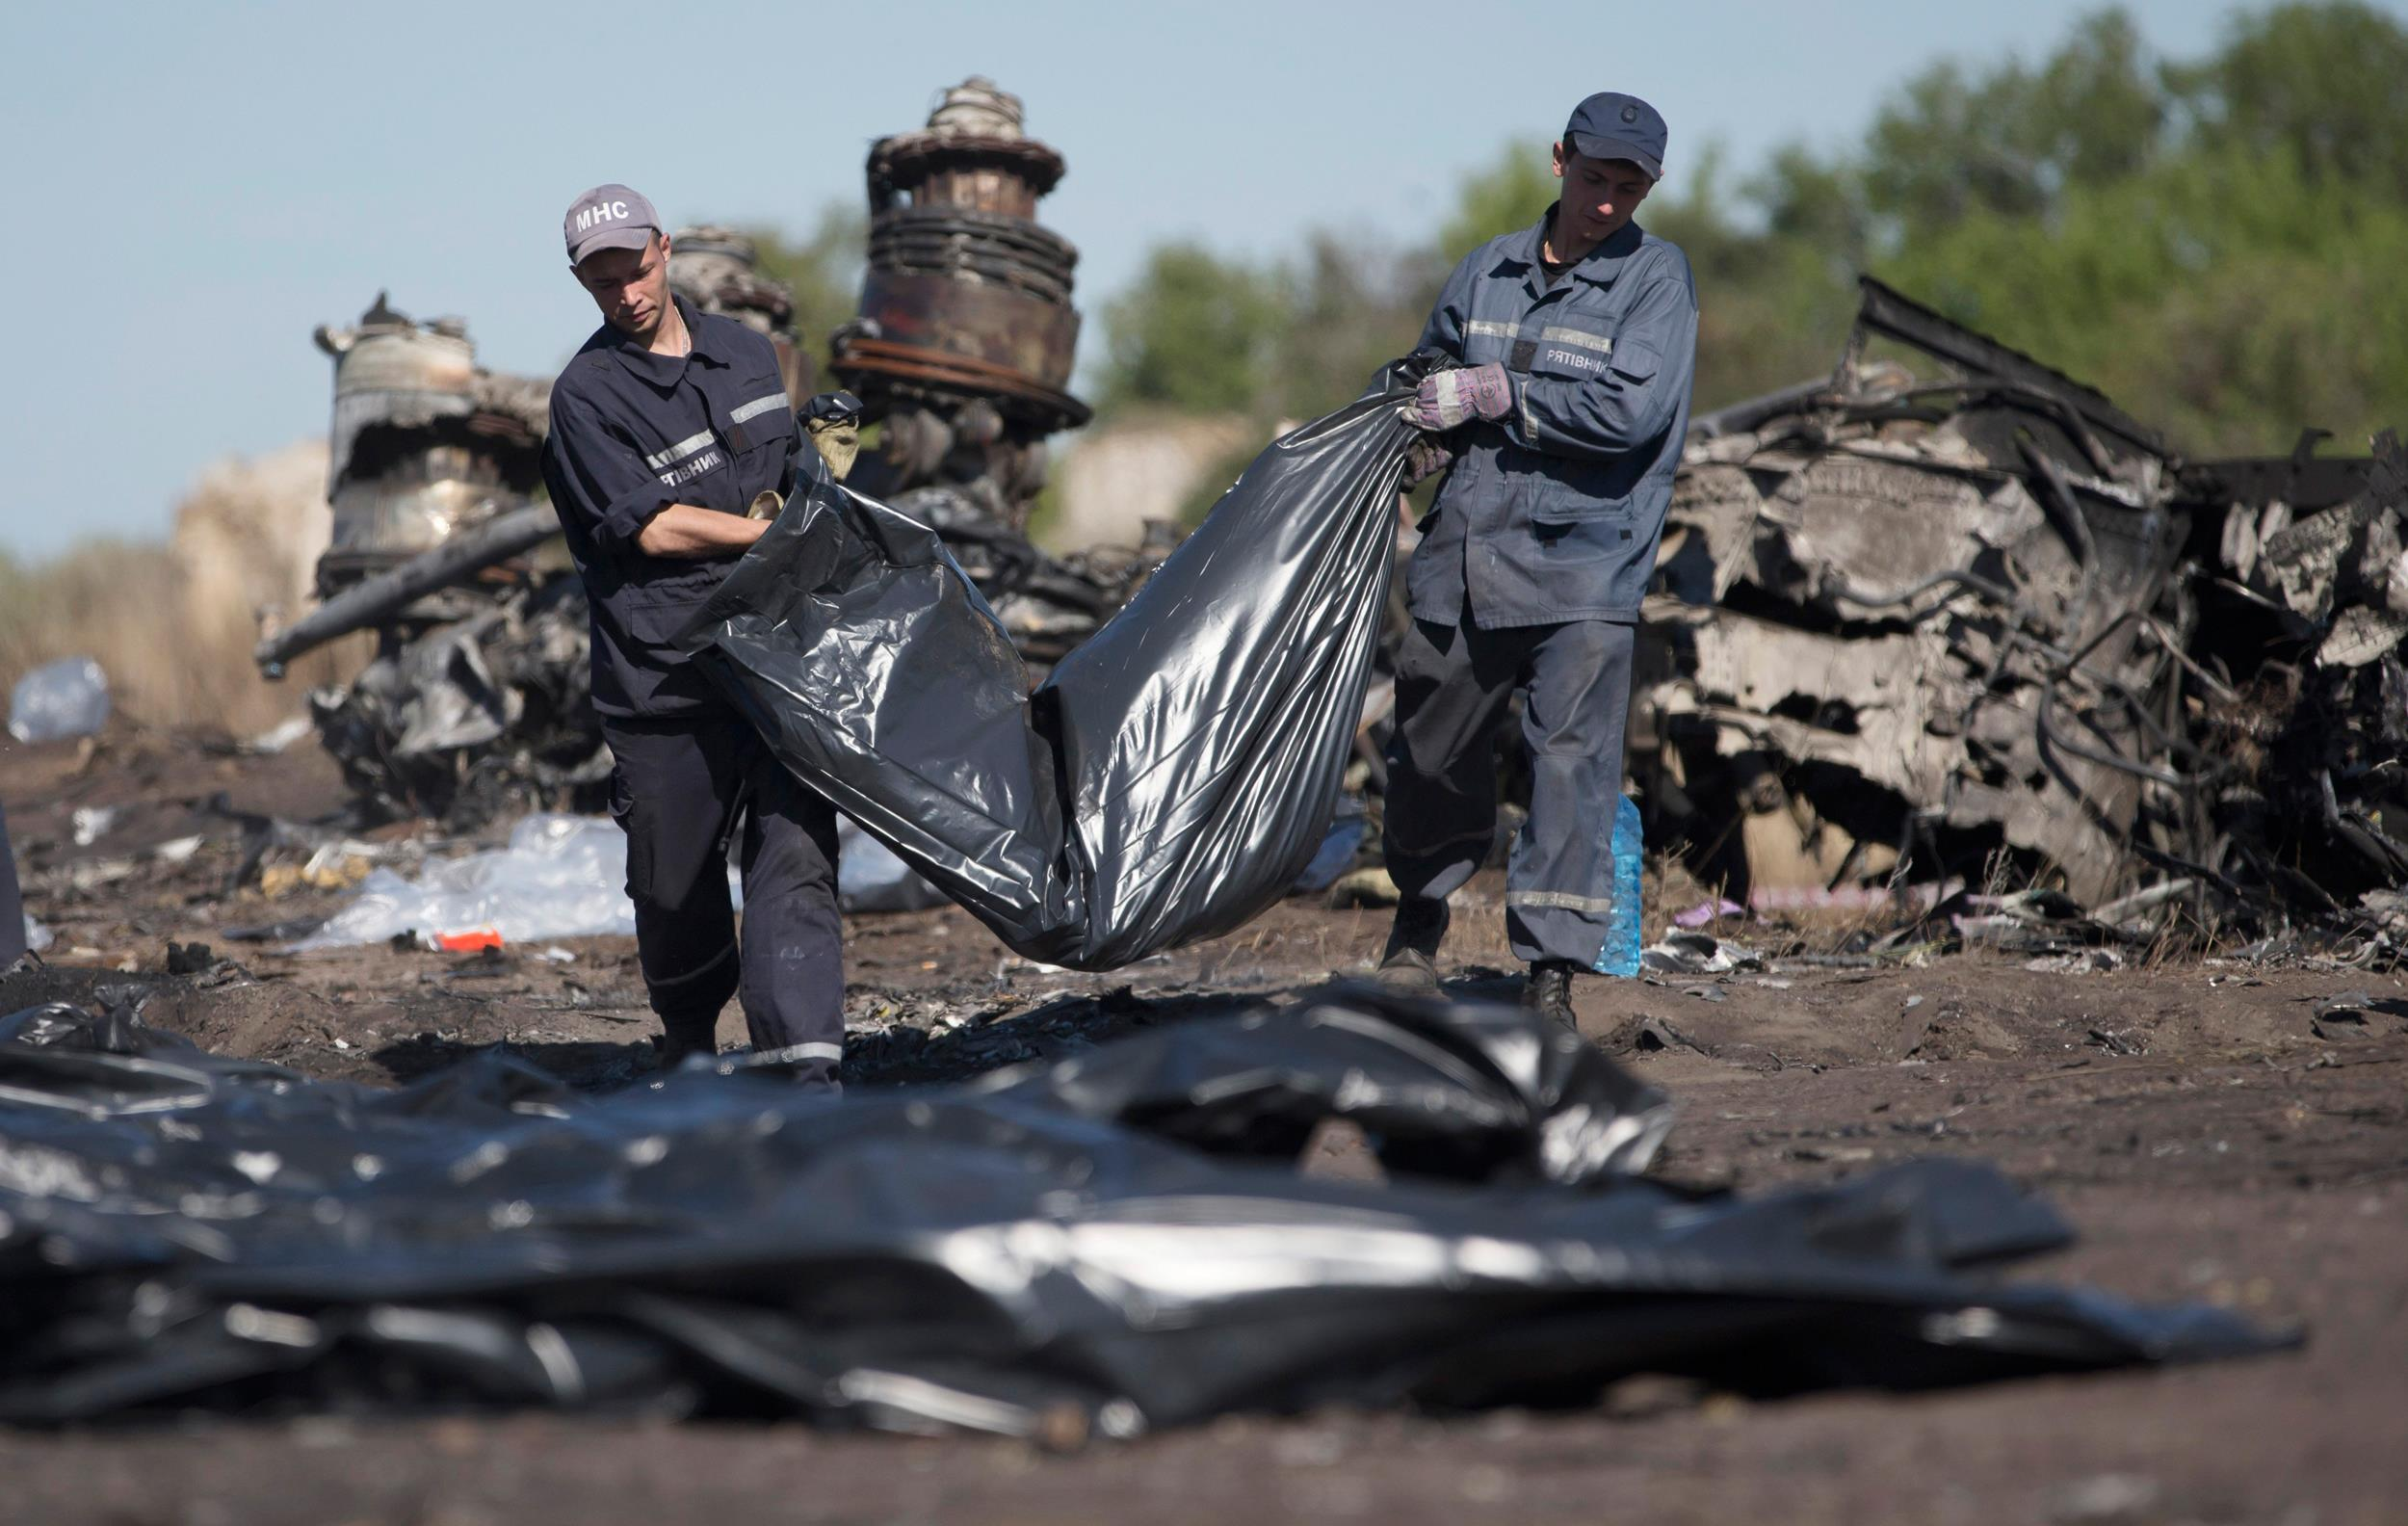 Image: Ukrainian emergency workers carry a victim's body in a bag at the crash site of Malaysia Airlines Flight 17